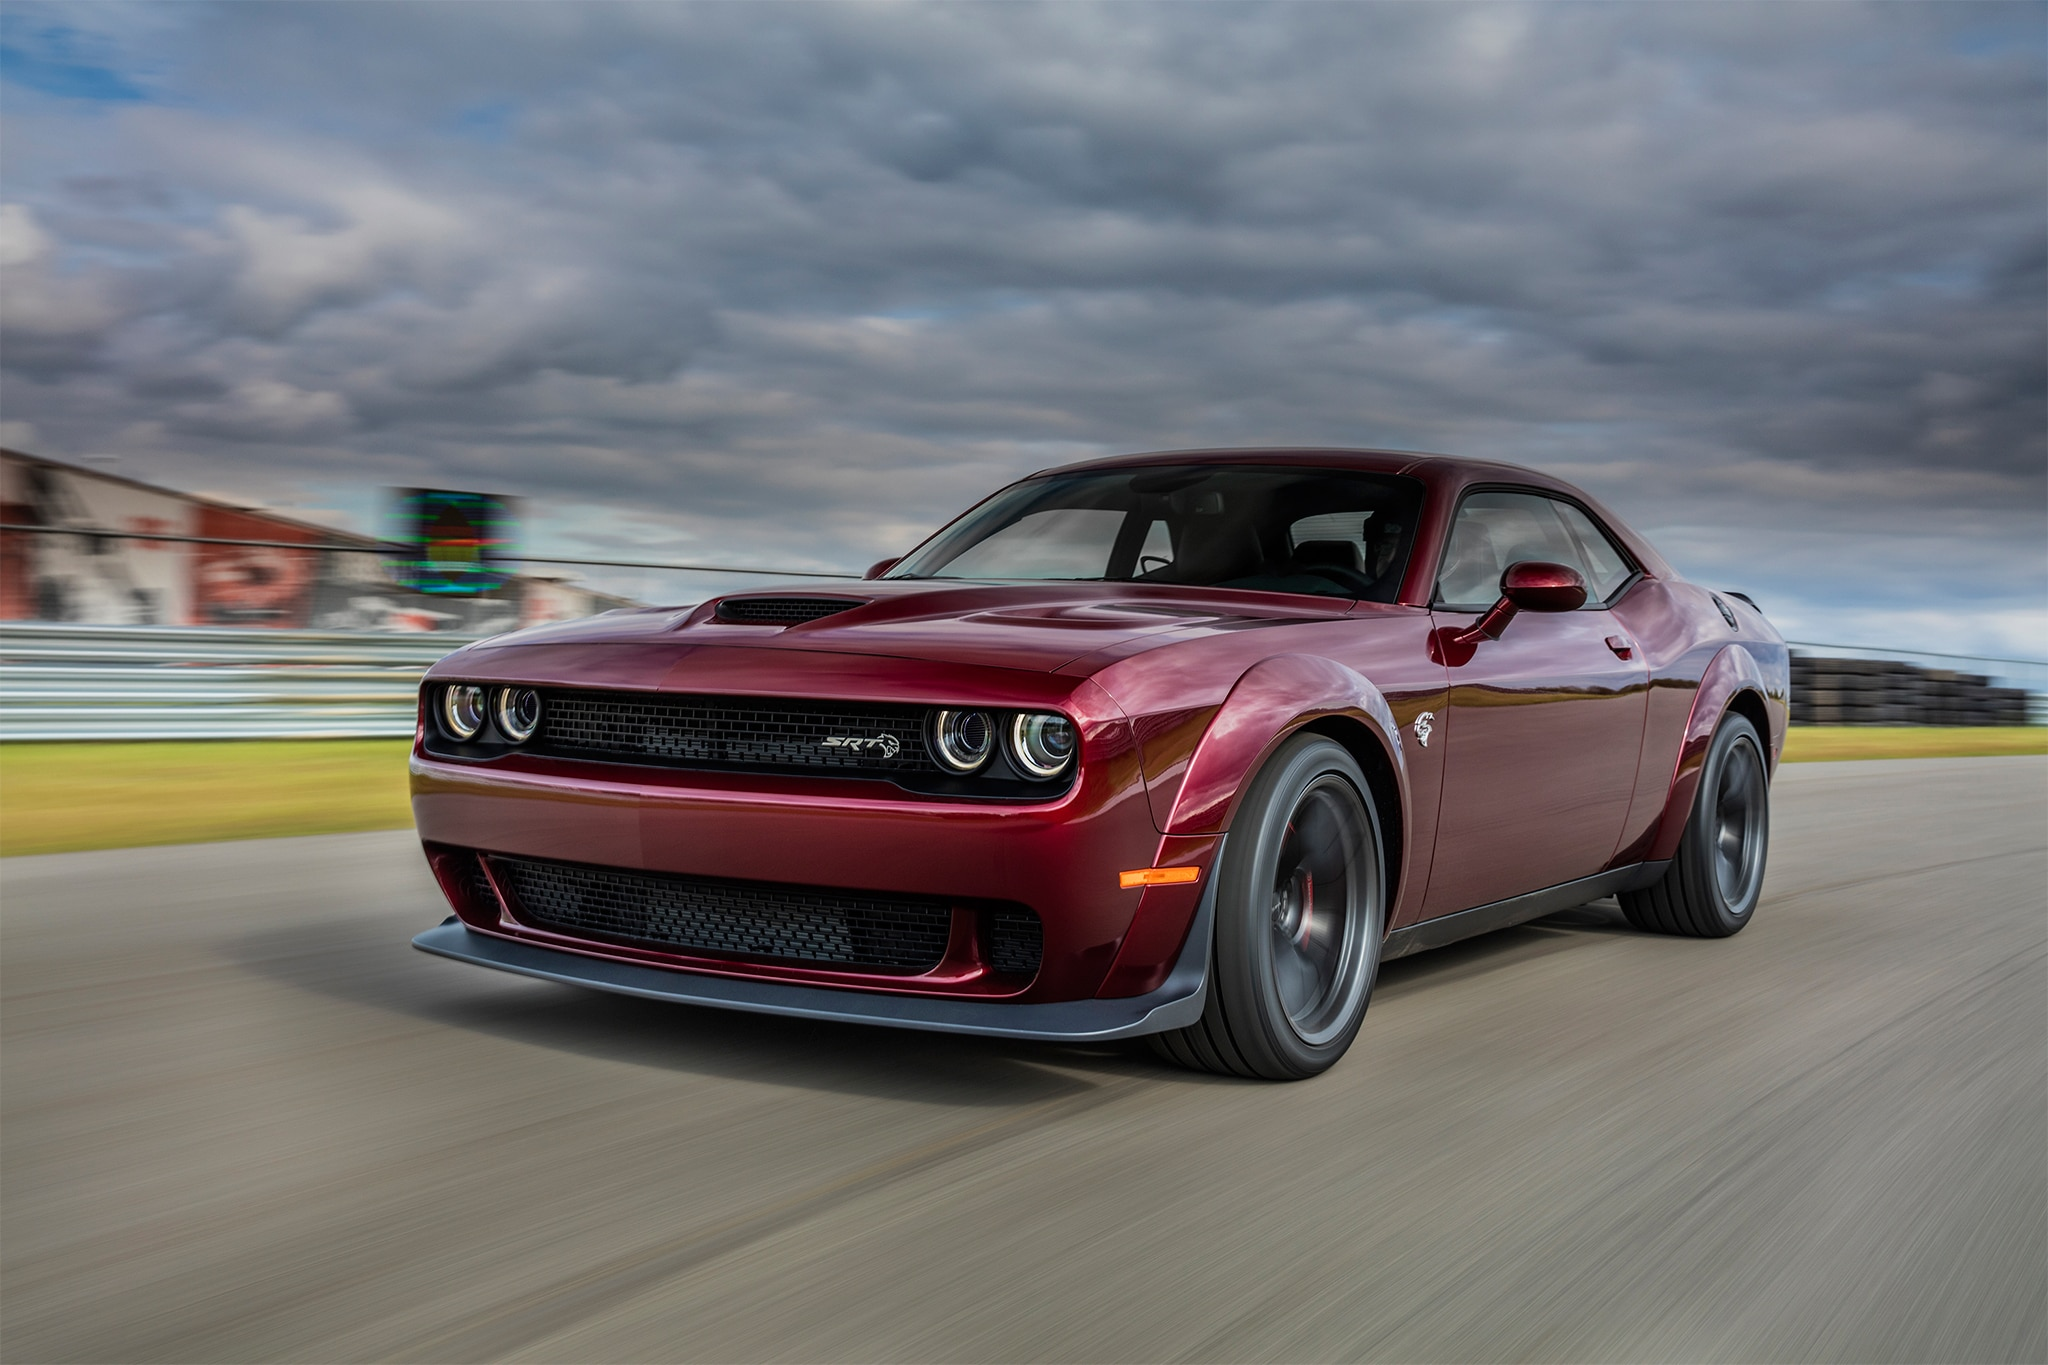 Challenger Srt Hellcat Gets A Widebody For 2018 Automobile Magazine